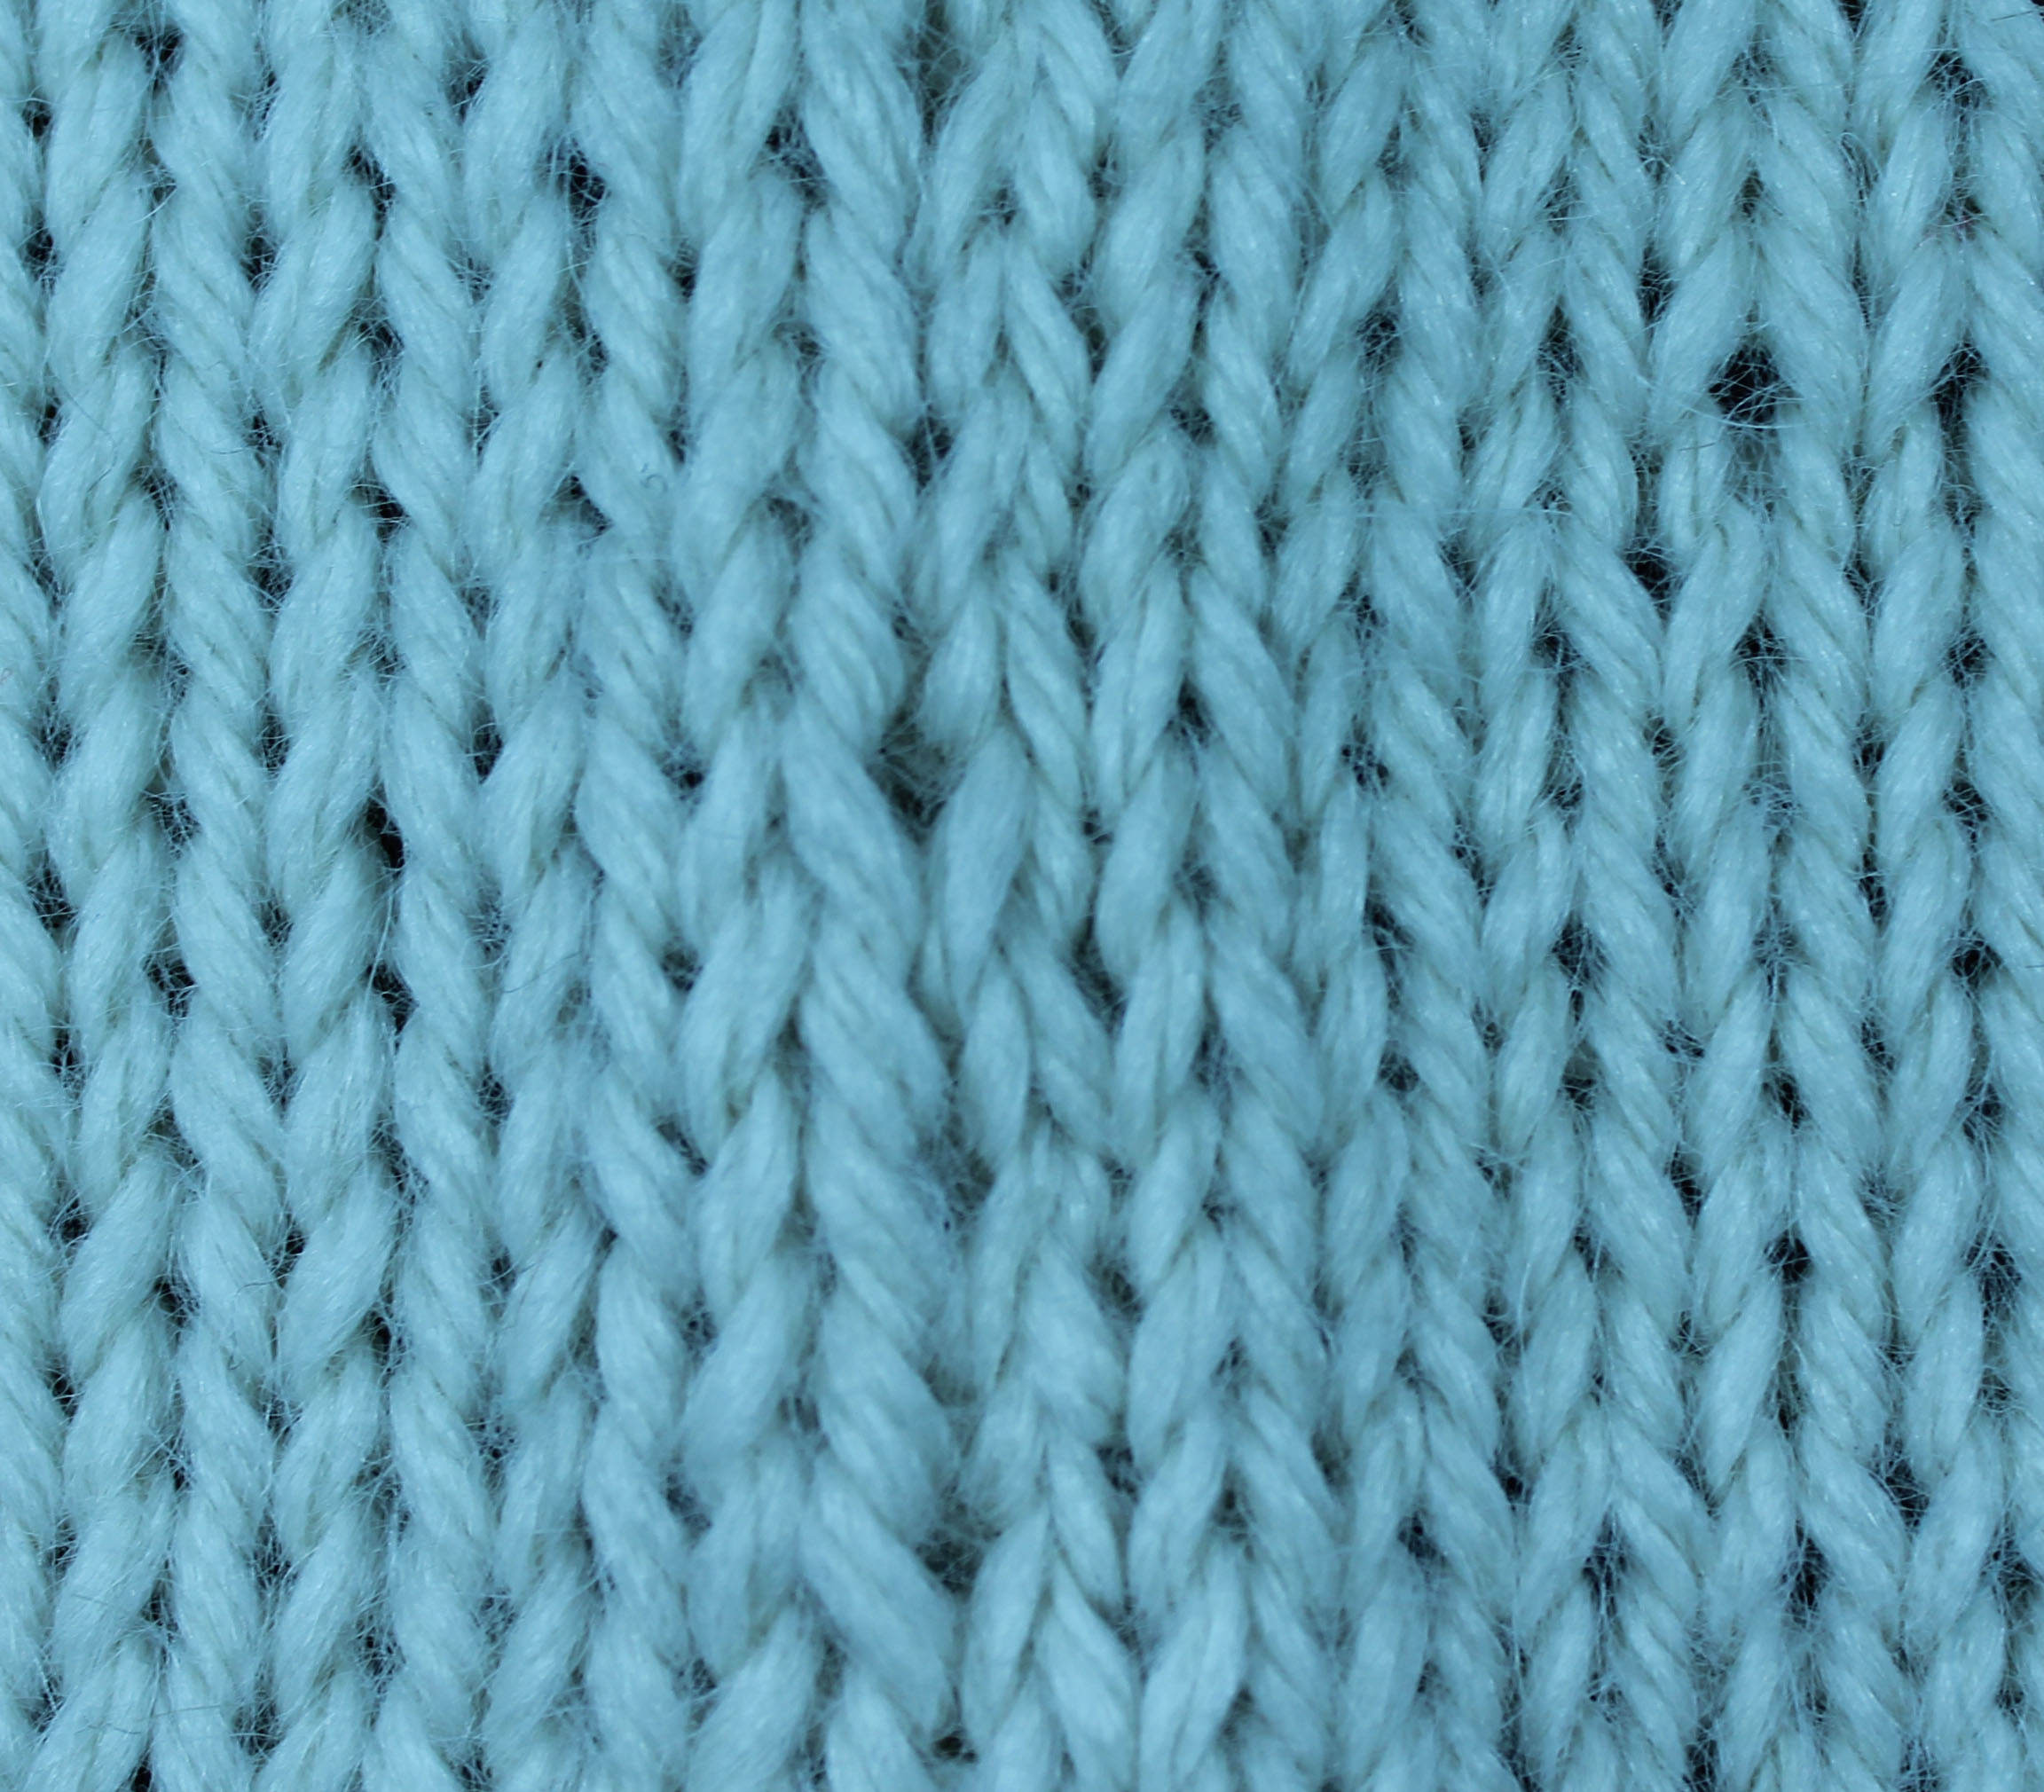 How to Seam Stockinette Stitch (St. st) knotty bebe